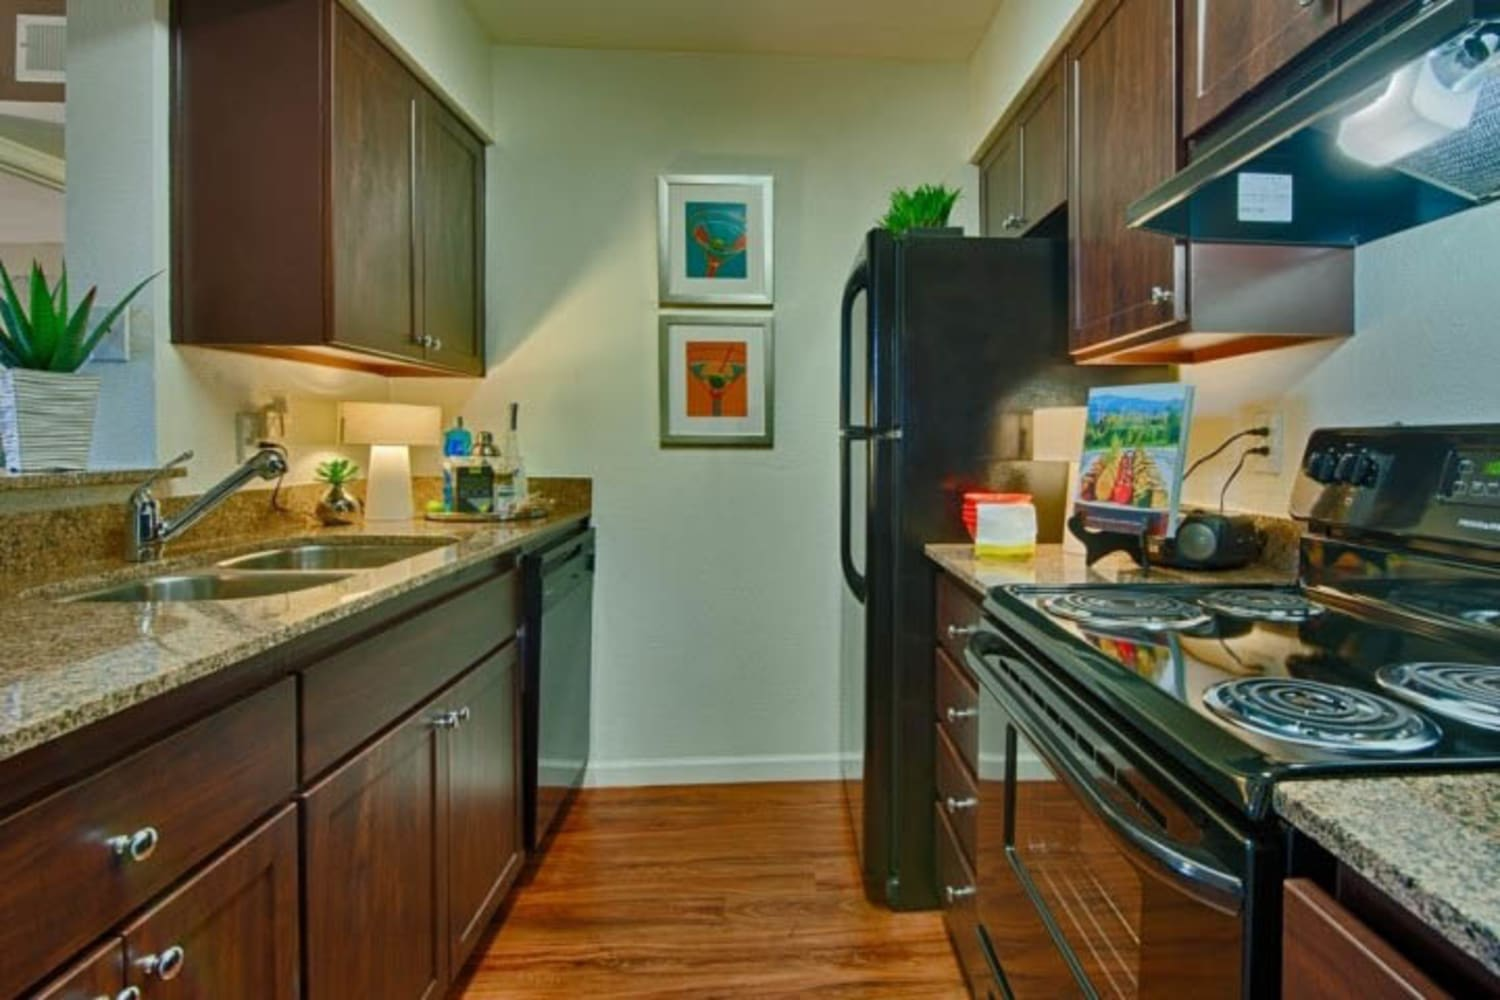 Cabrillo Apartments offer modern kitchen interiors in Scottsdale, Arizona